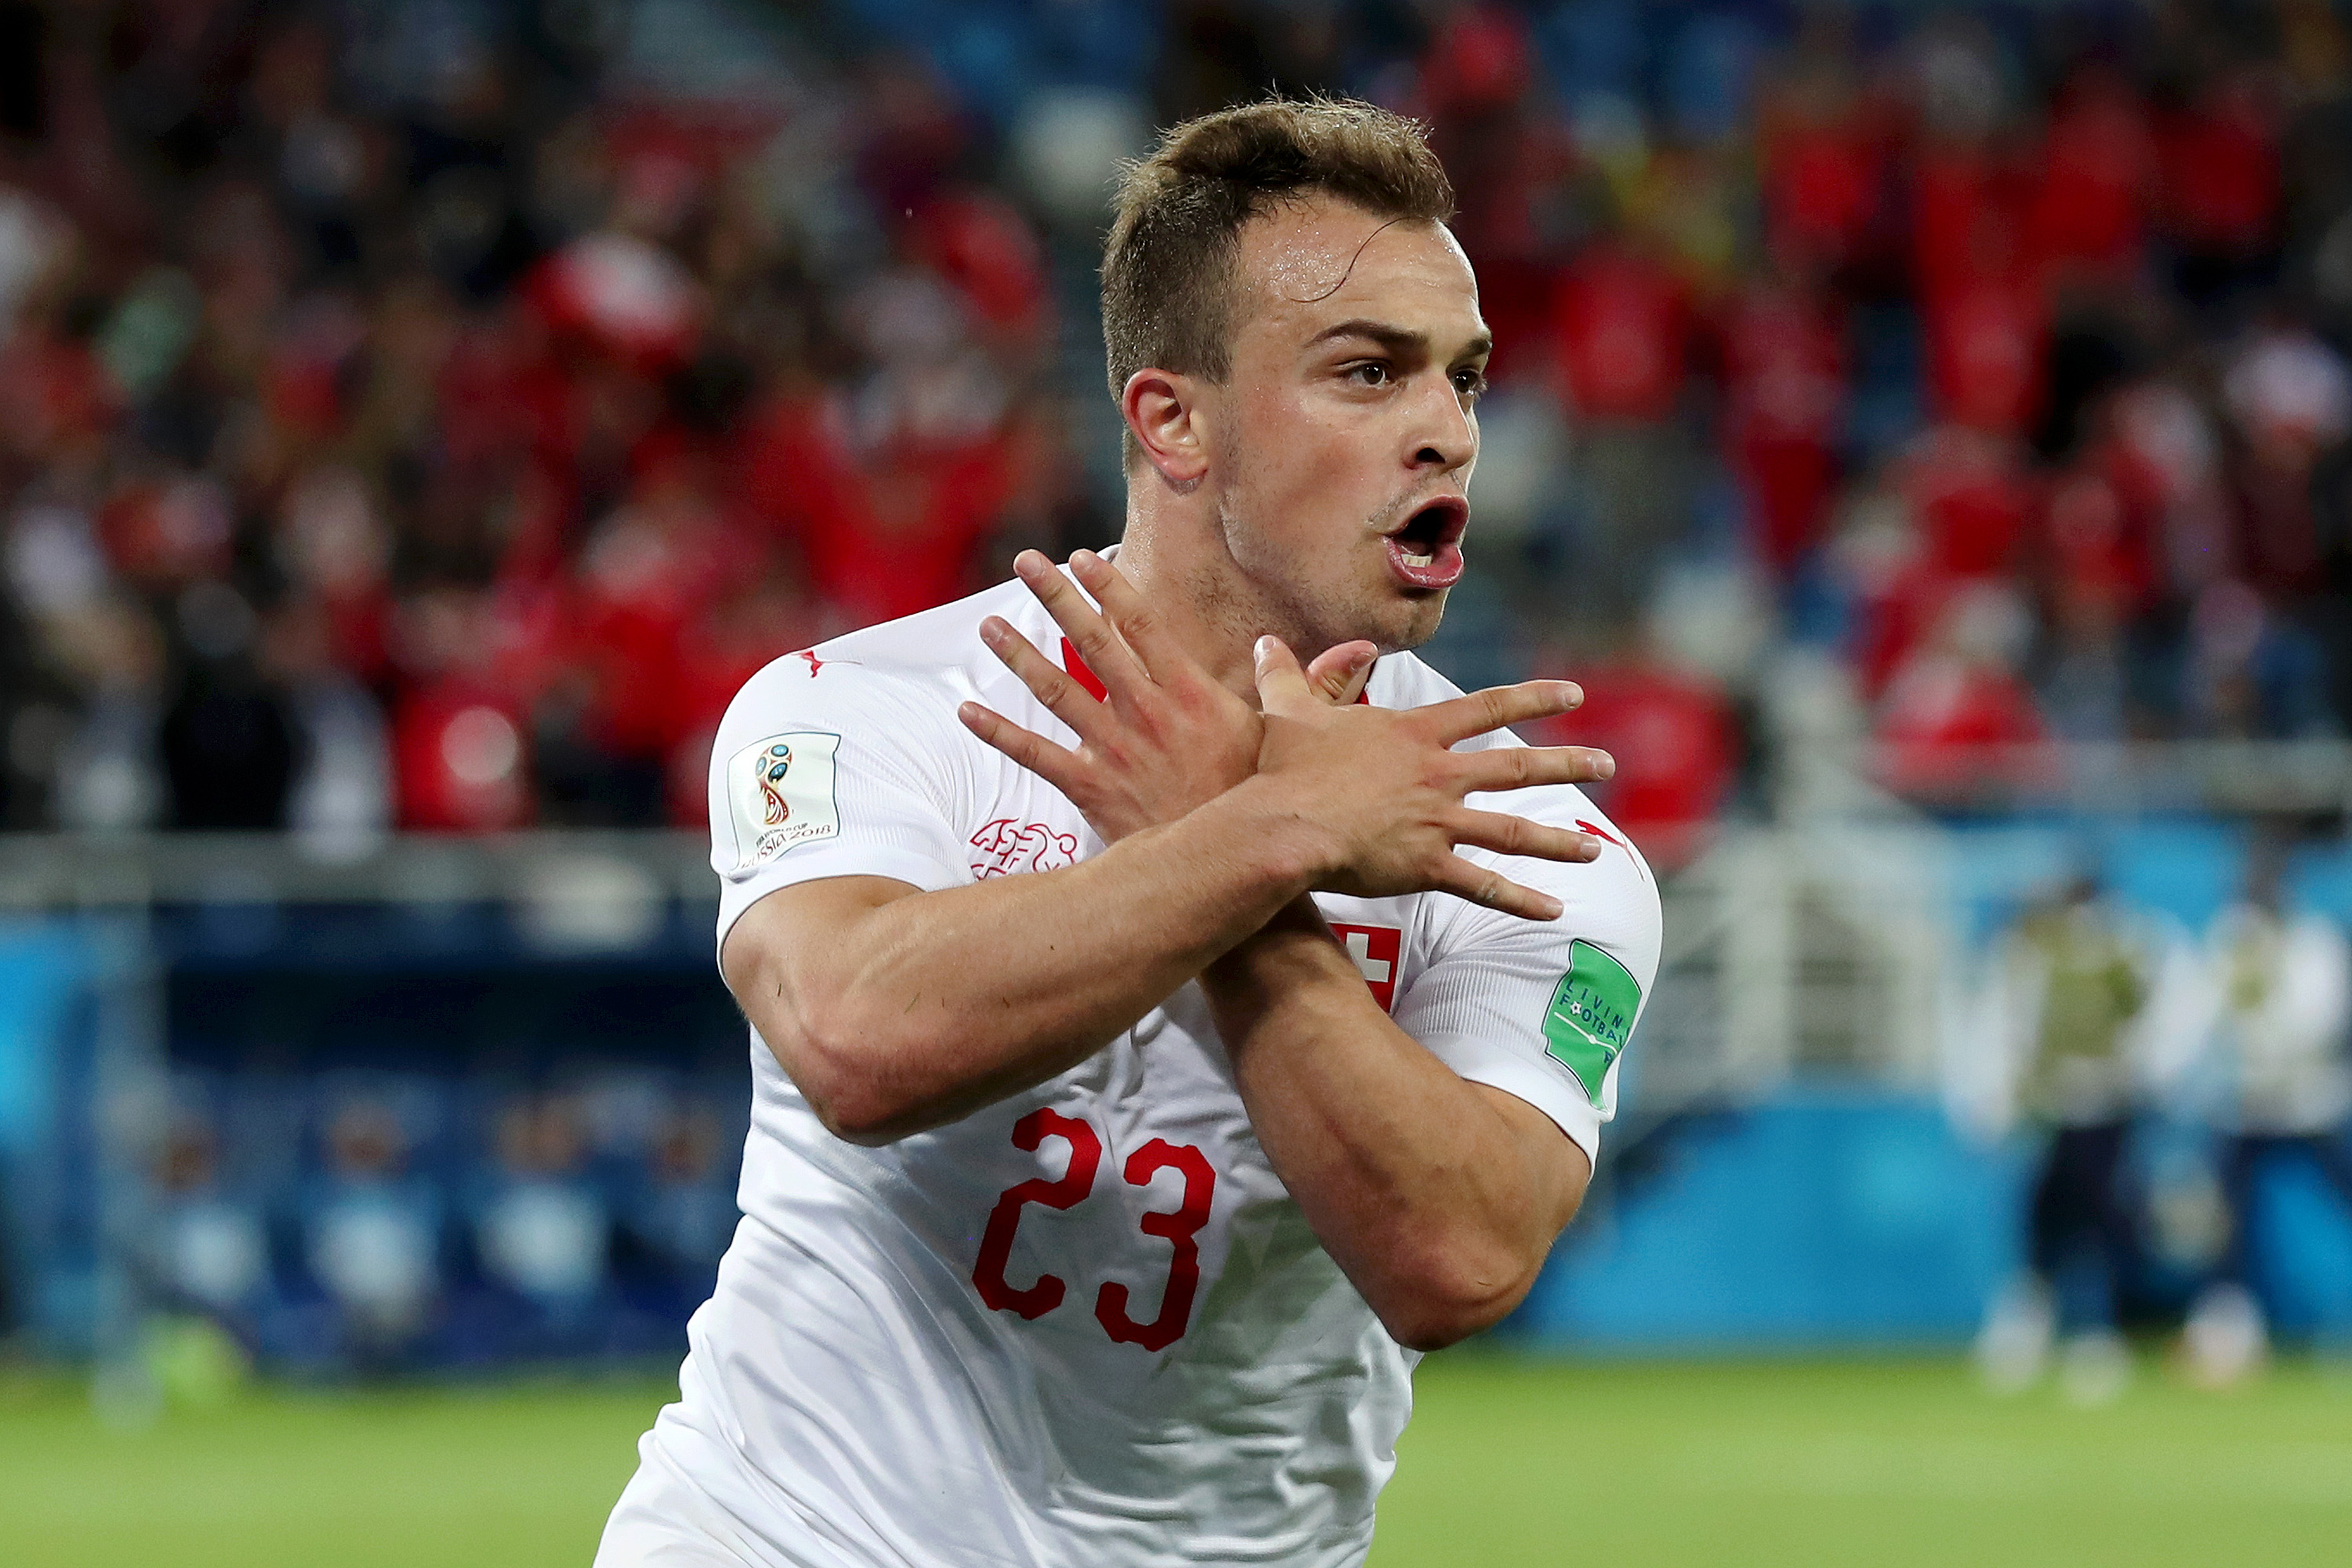 Manager rebukes Swiss players' nationalist gesture during Serbia game